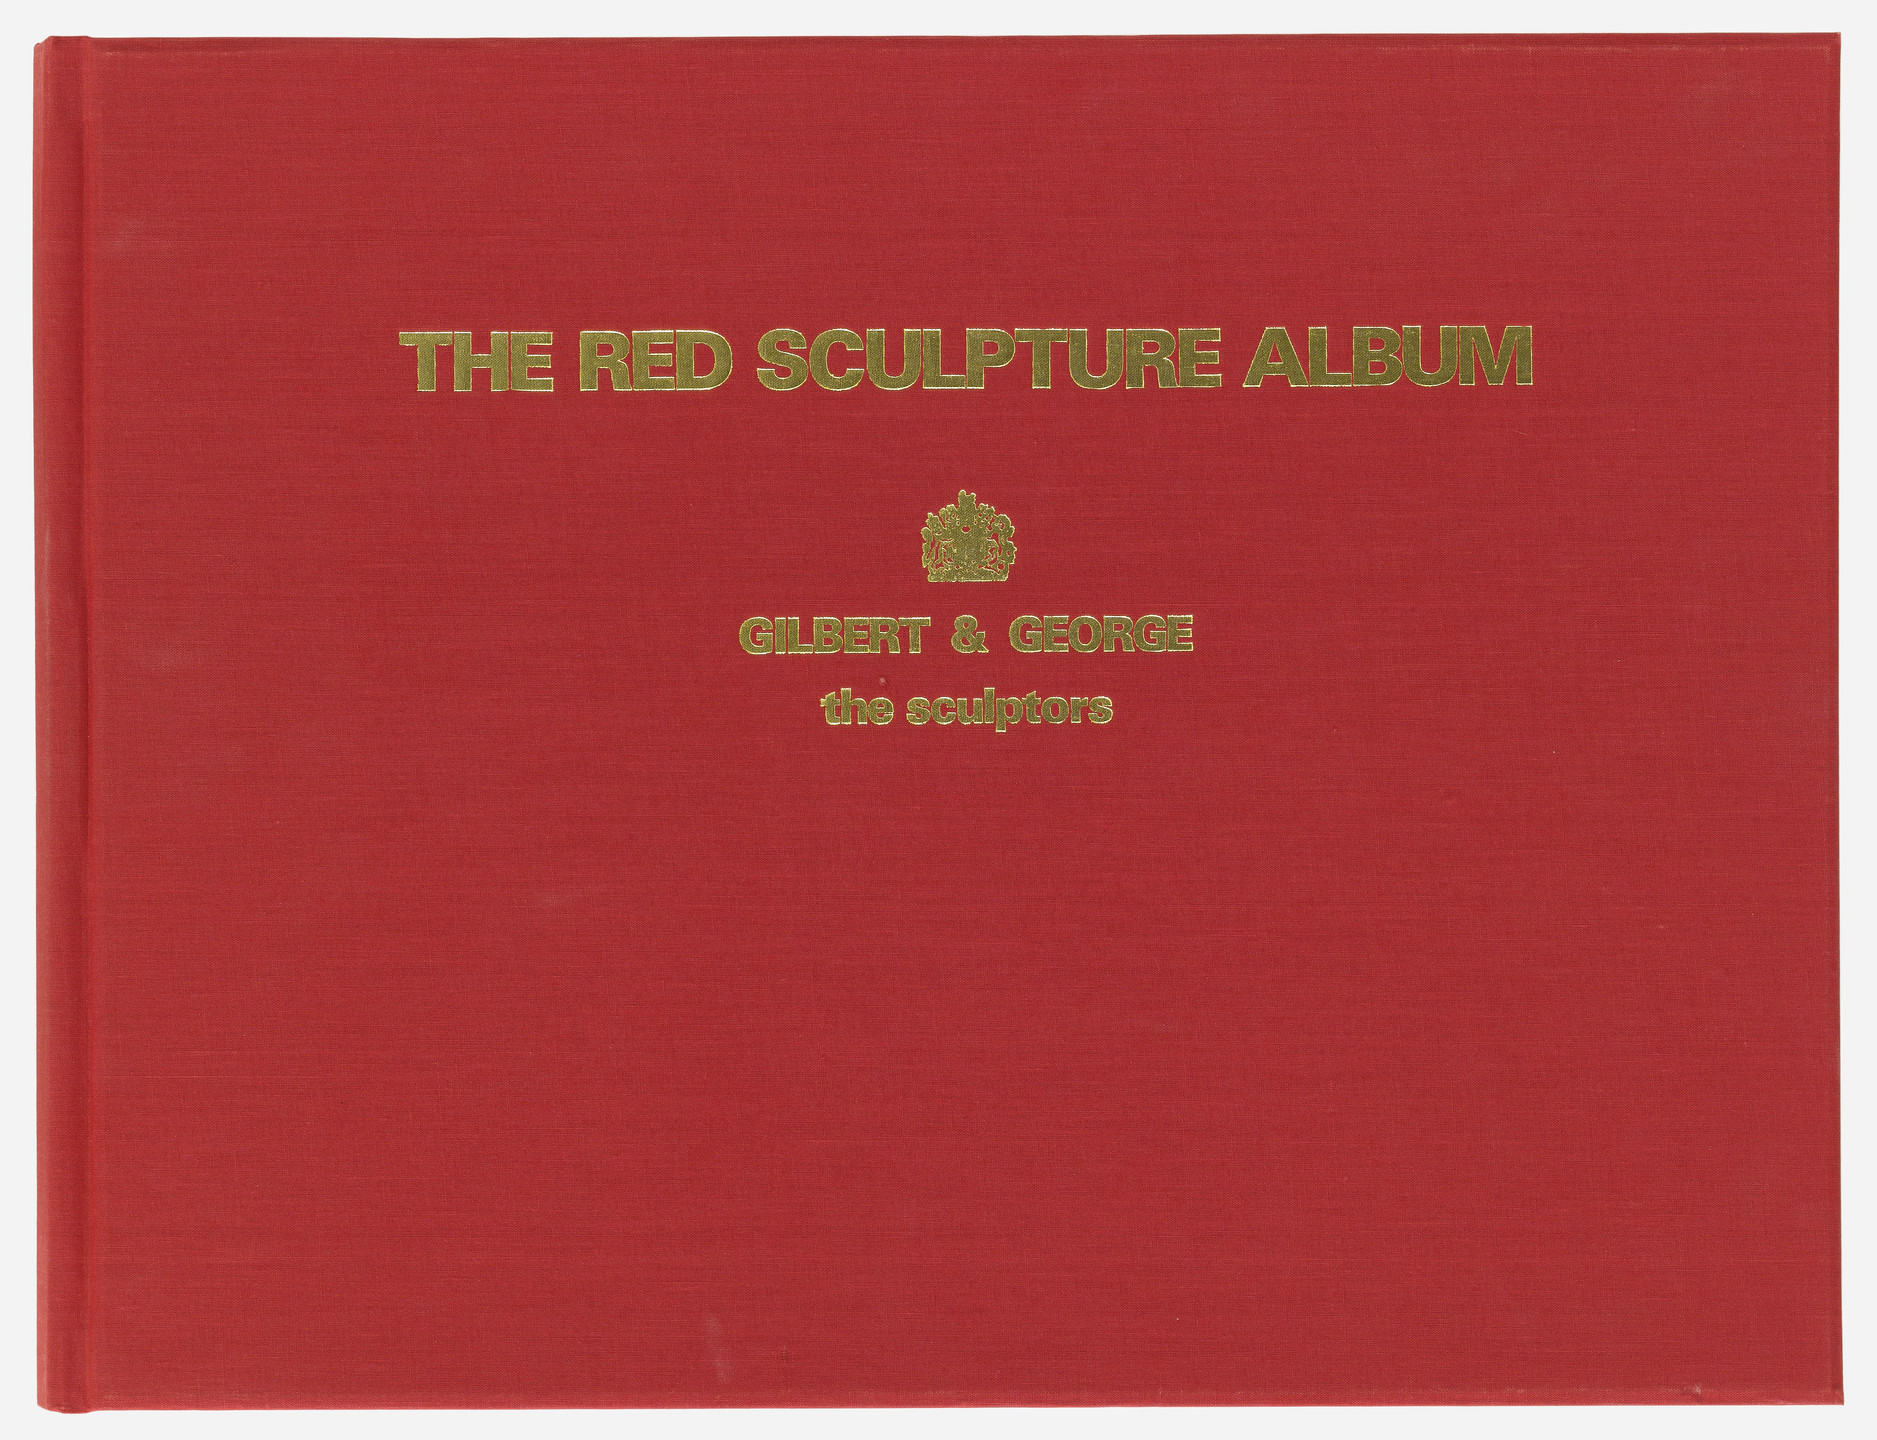 Gilbert & George. The Red Sculpture Album. 1975